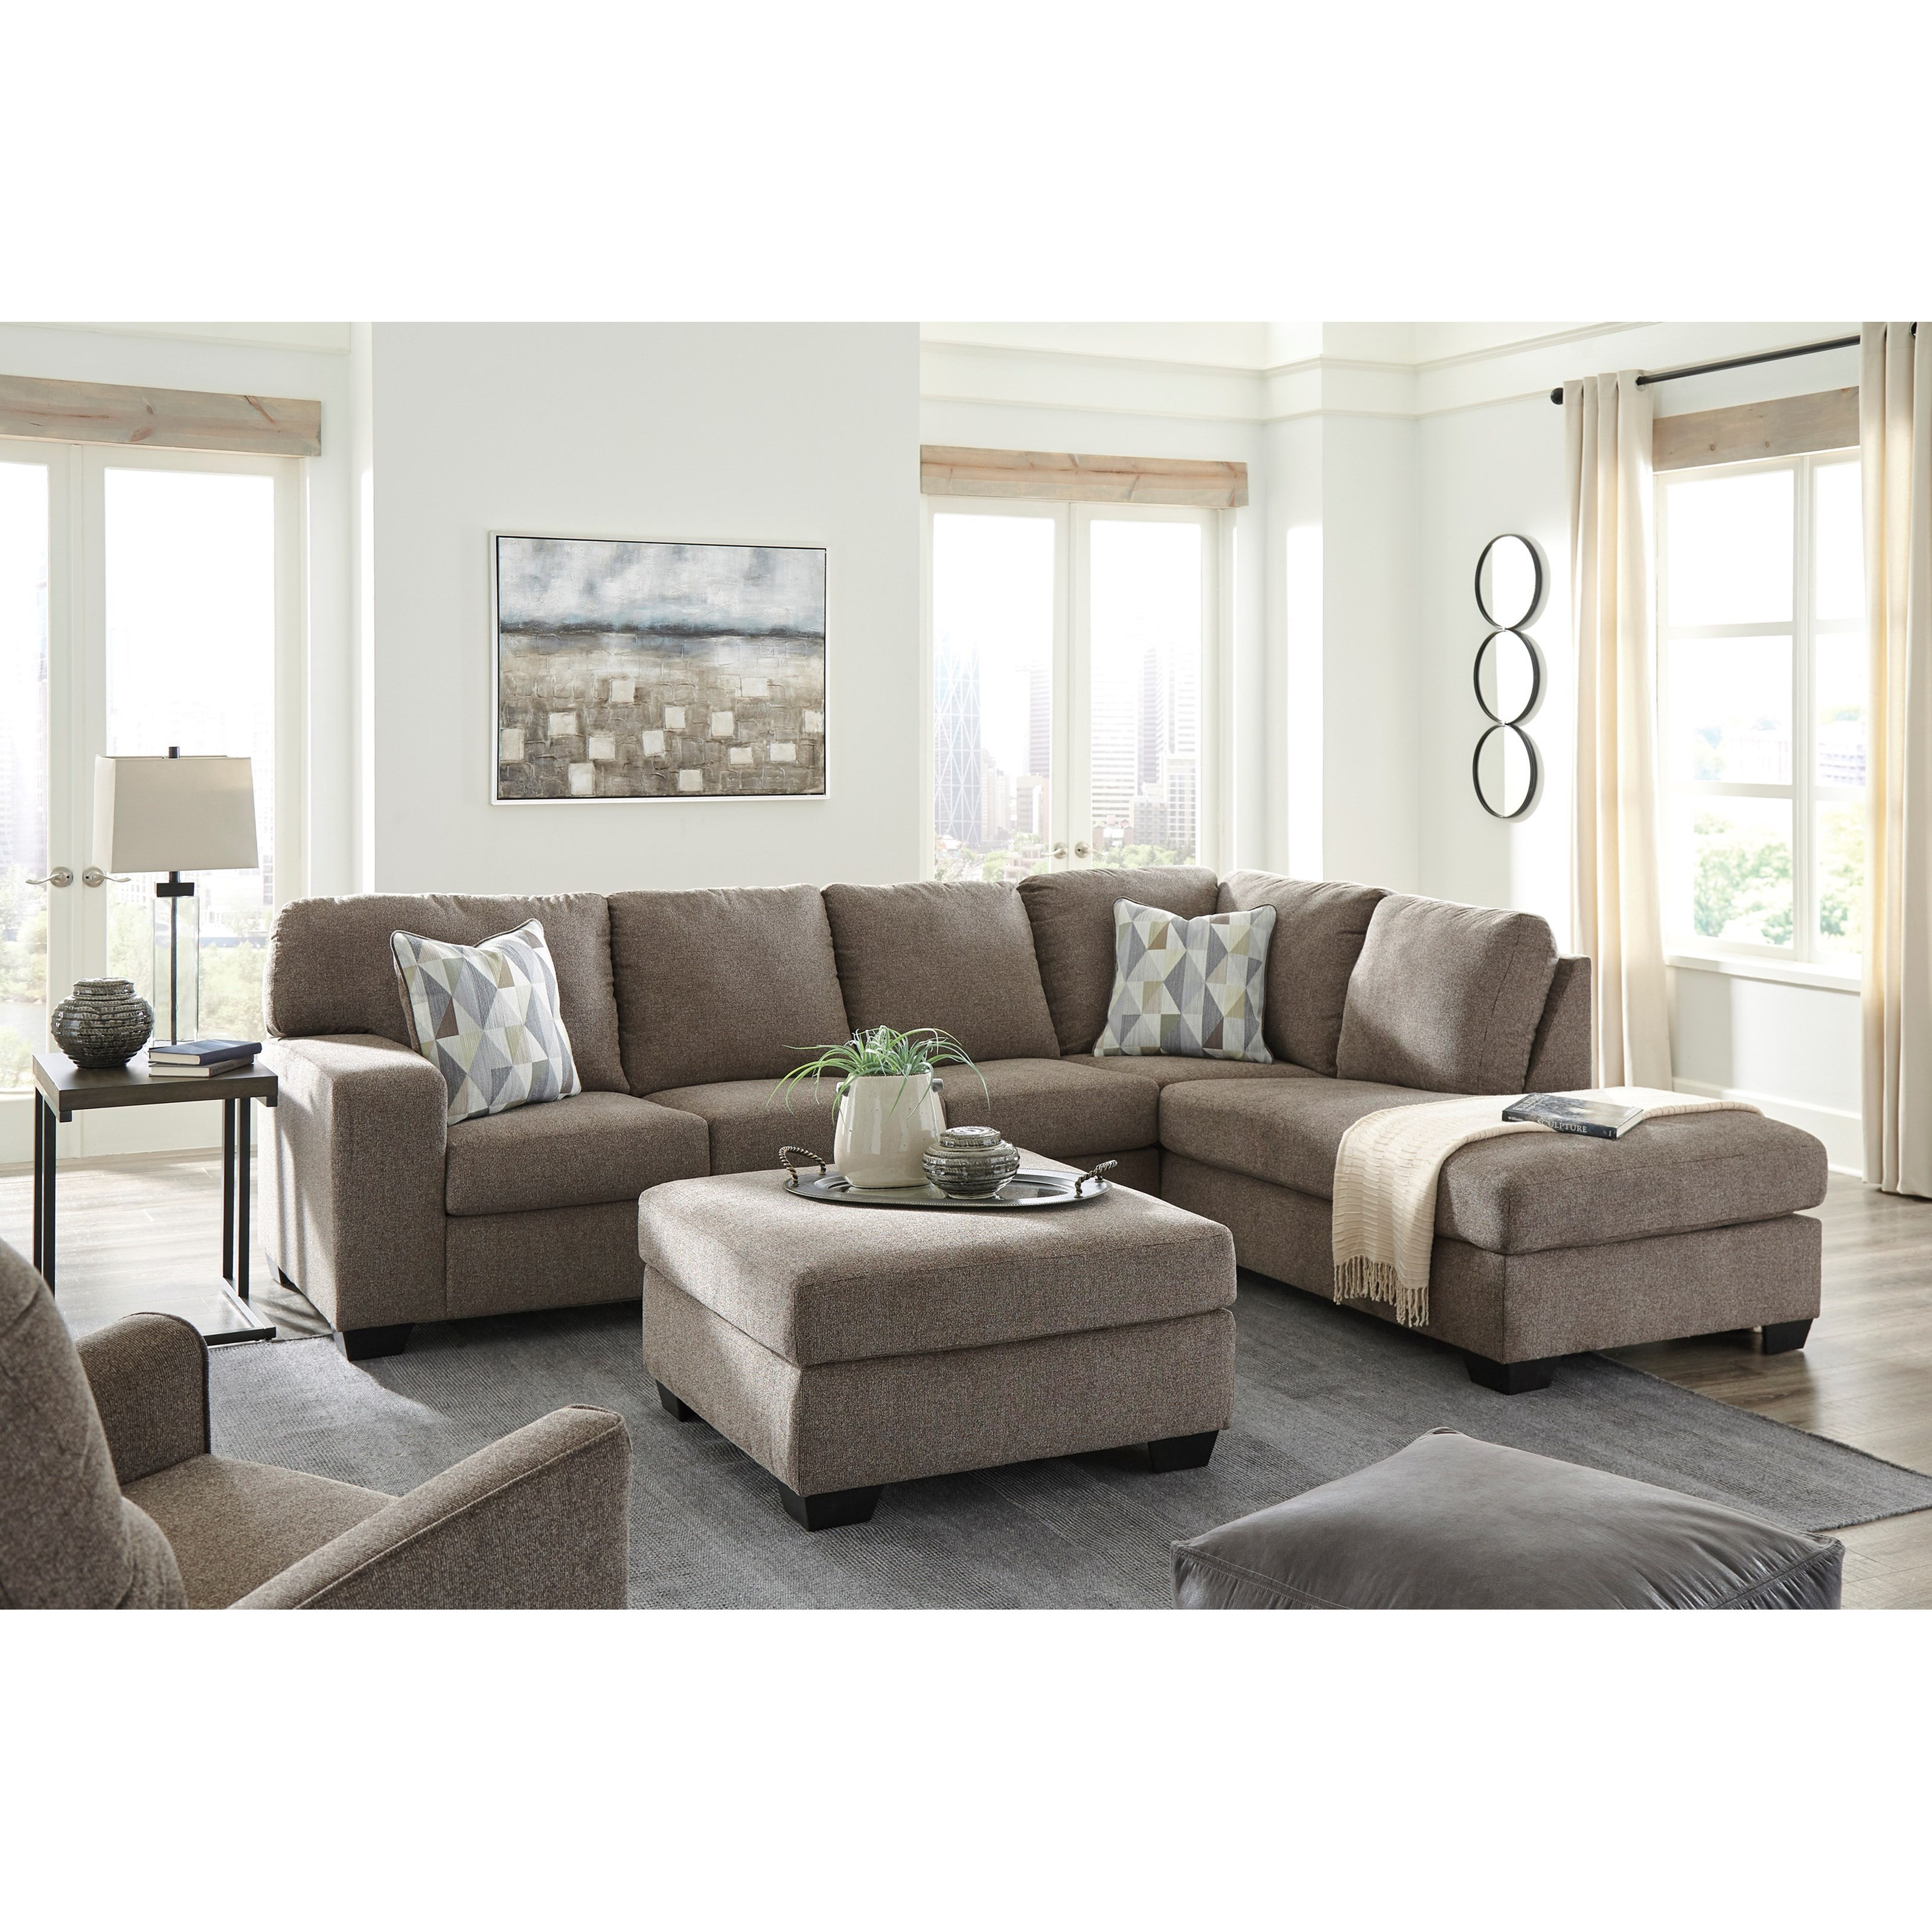 Dalhart Living Room Group by Benchcraft at Walker's Furniture